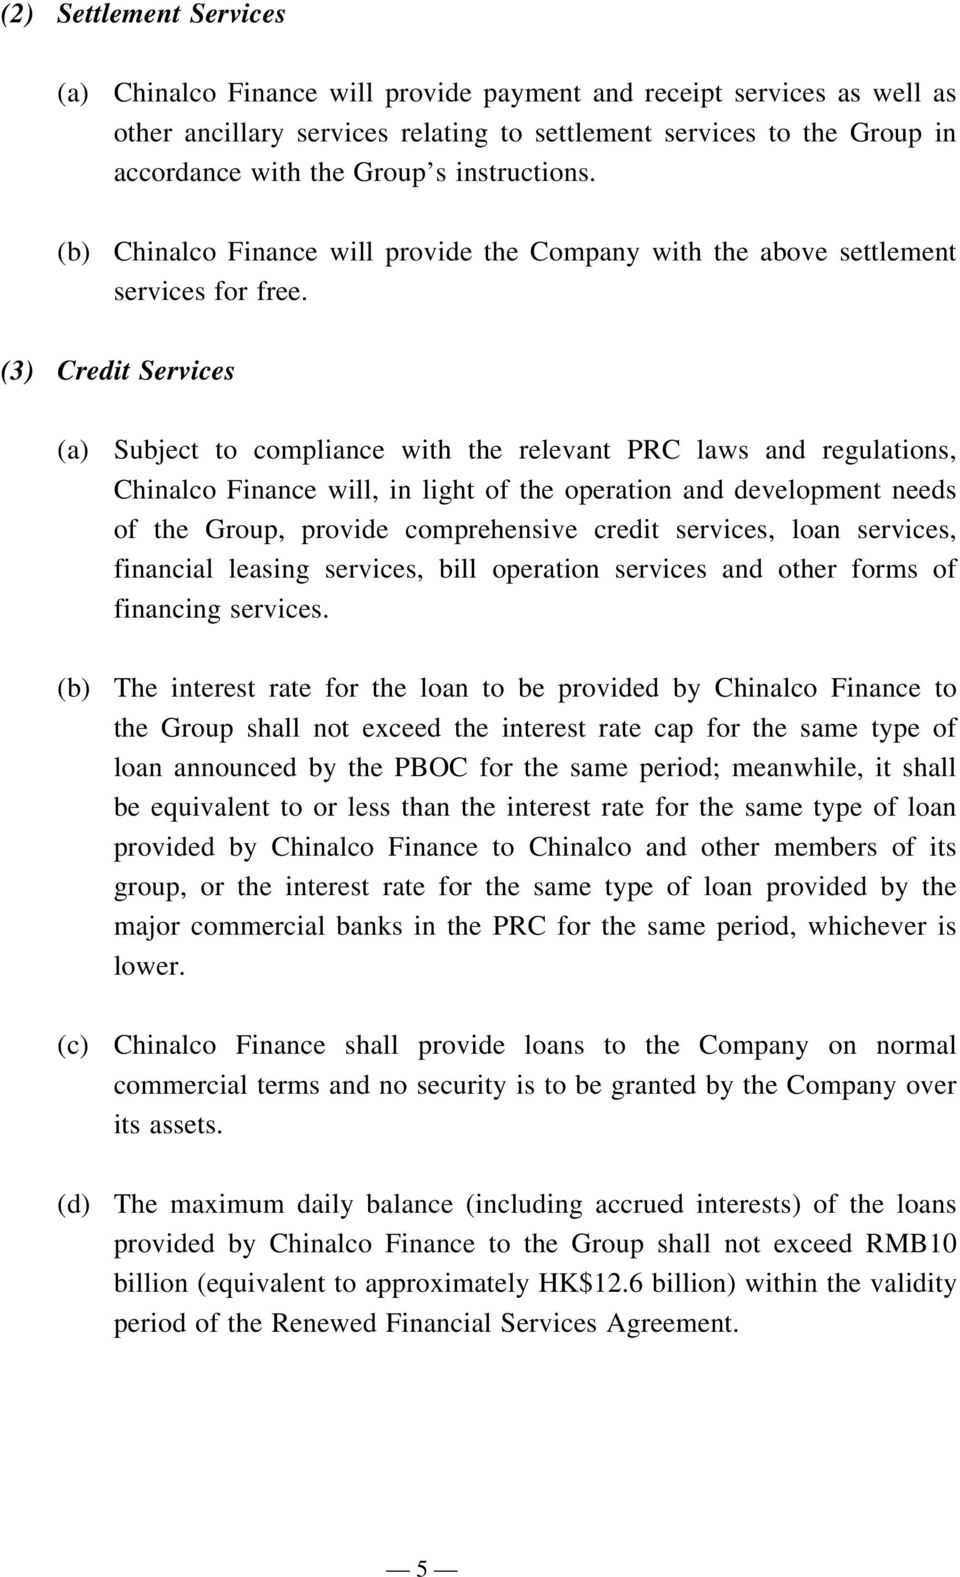 (3) Credit Services (a) Subject to compliance with the relevant PRC laws and regulations, Chinalco Finance will, in light of the operation and development needs of the Group, provide comprehensive